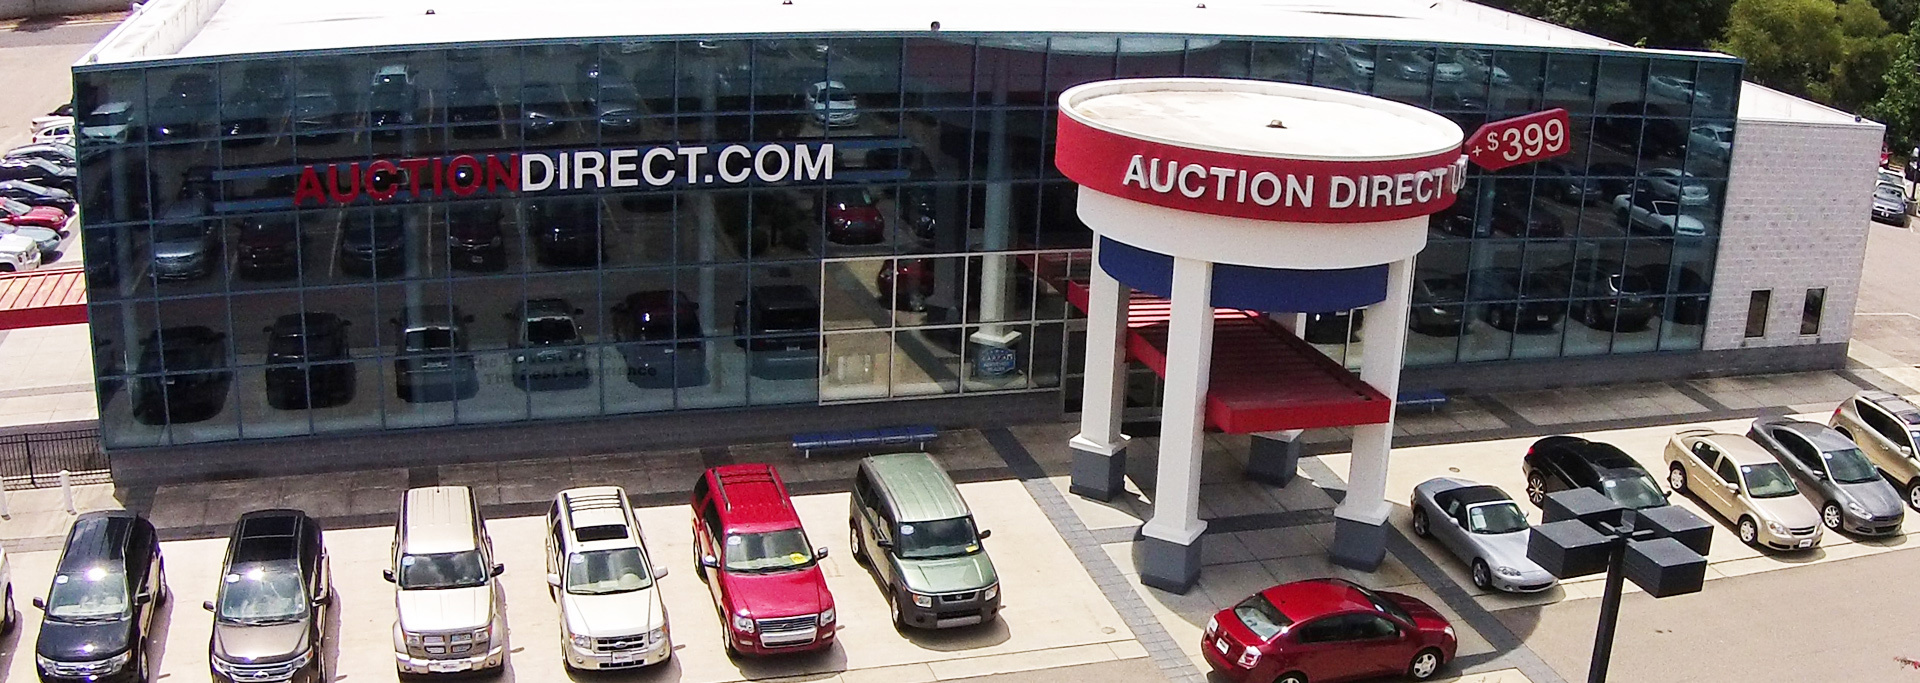 used cars Auction Direct USA